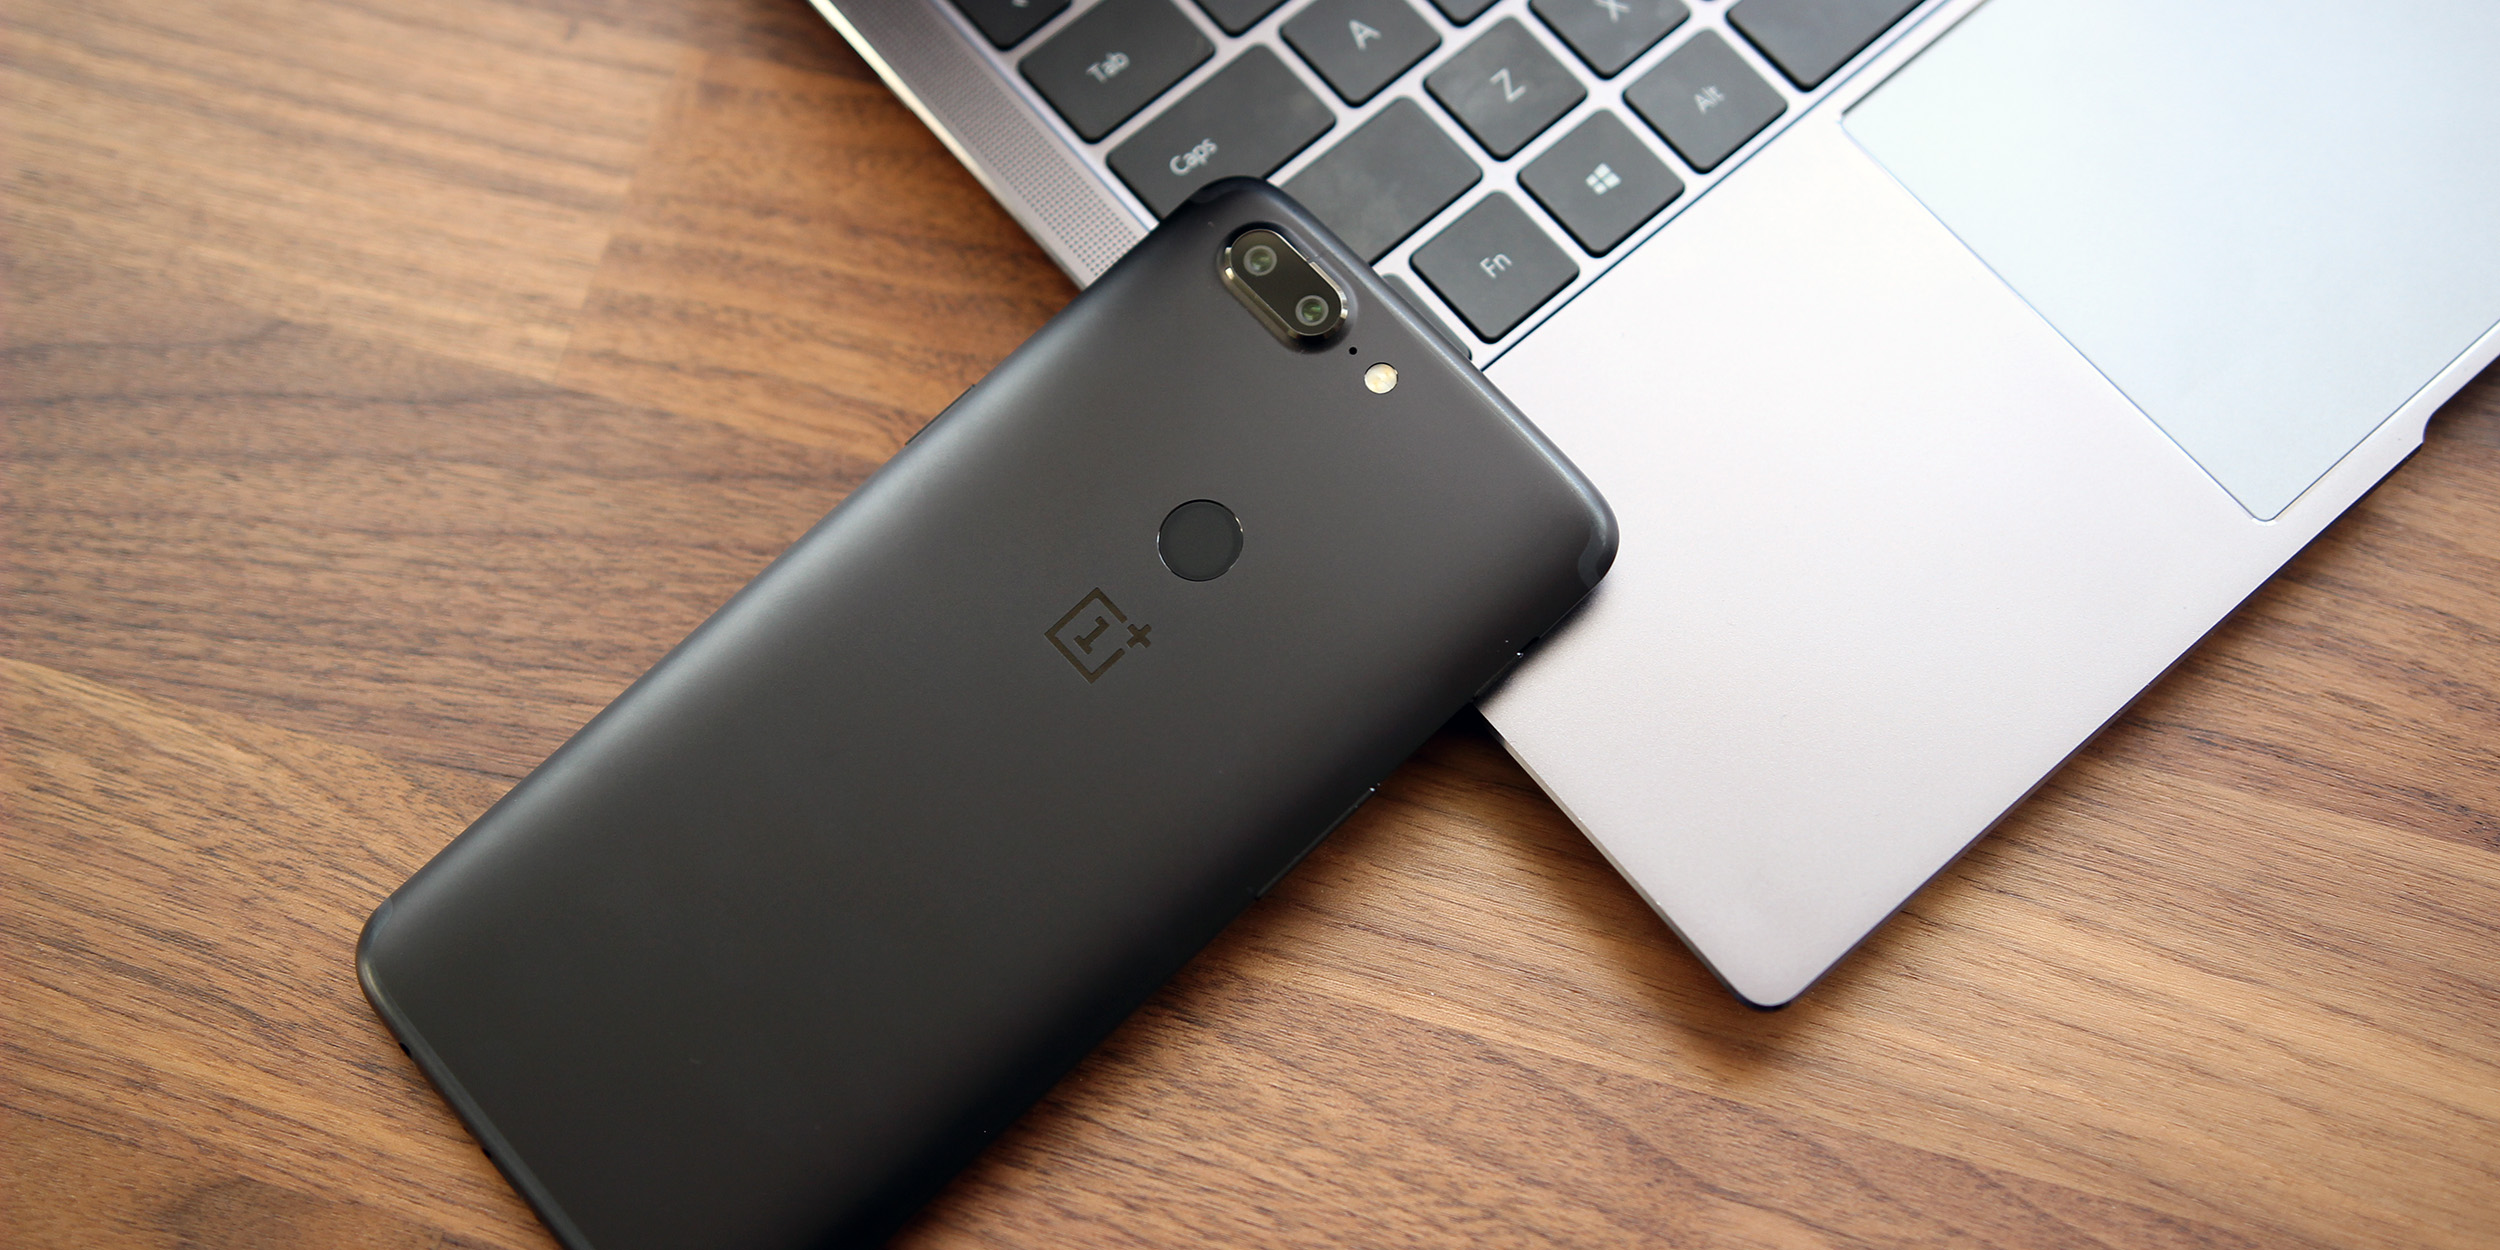 OnePlus will no longer be selling the 5T in North America